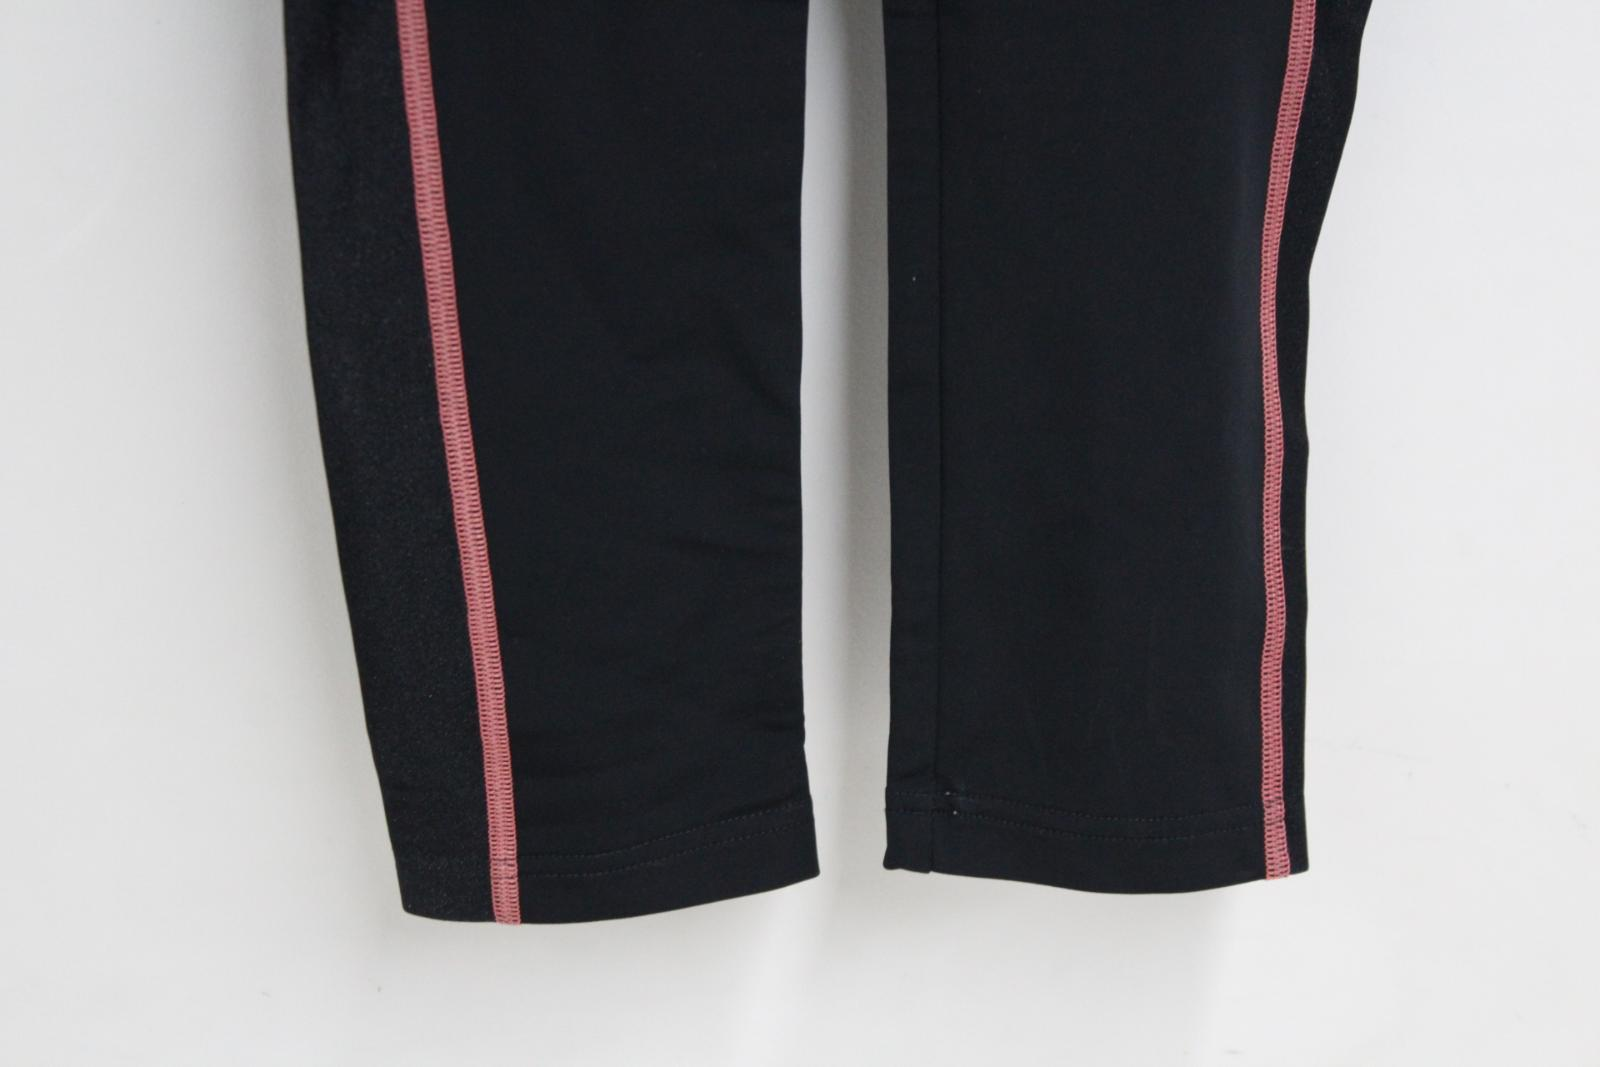 Sweaty-Betty-Senoras-Pantalones-Negros-Activewear-Ajustados-Leggings-Talla-XS-W24-L28 miniatura 5